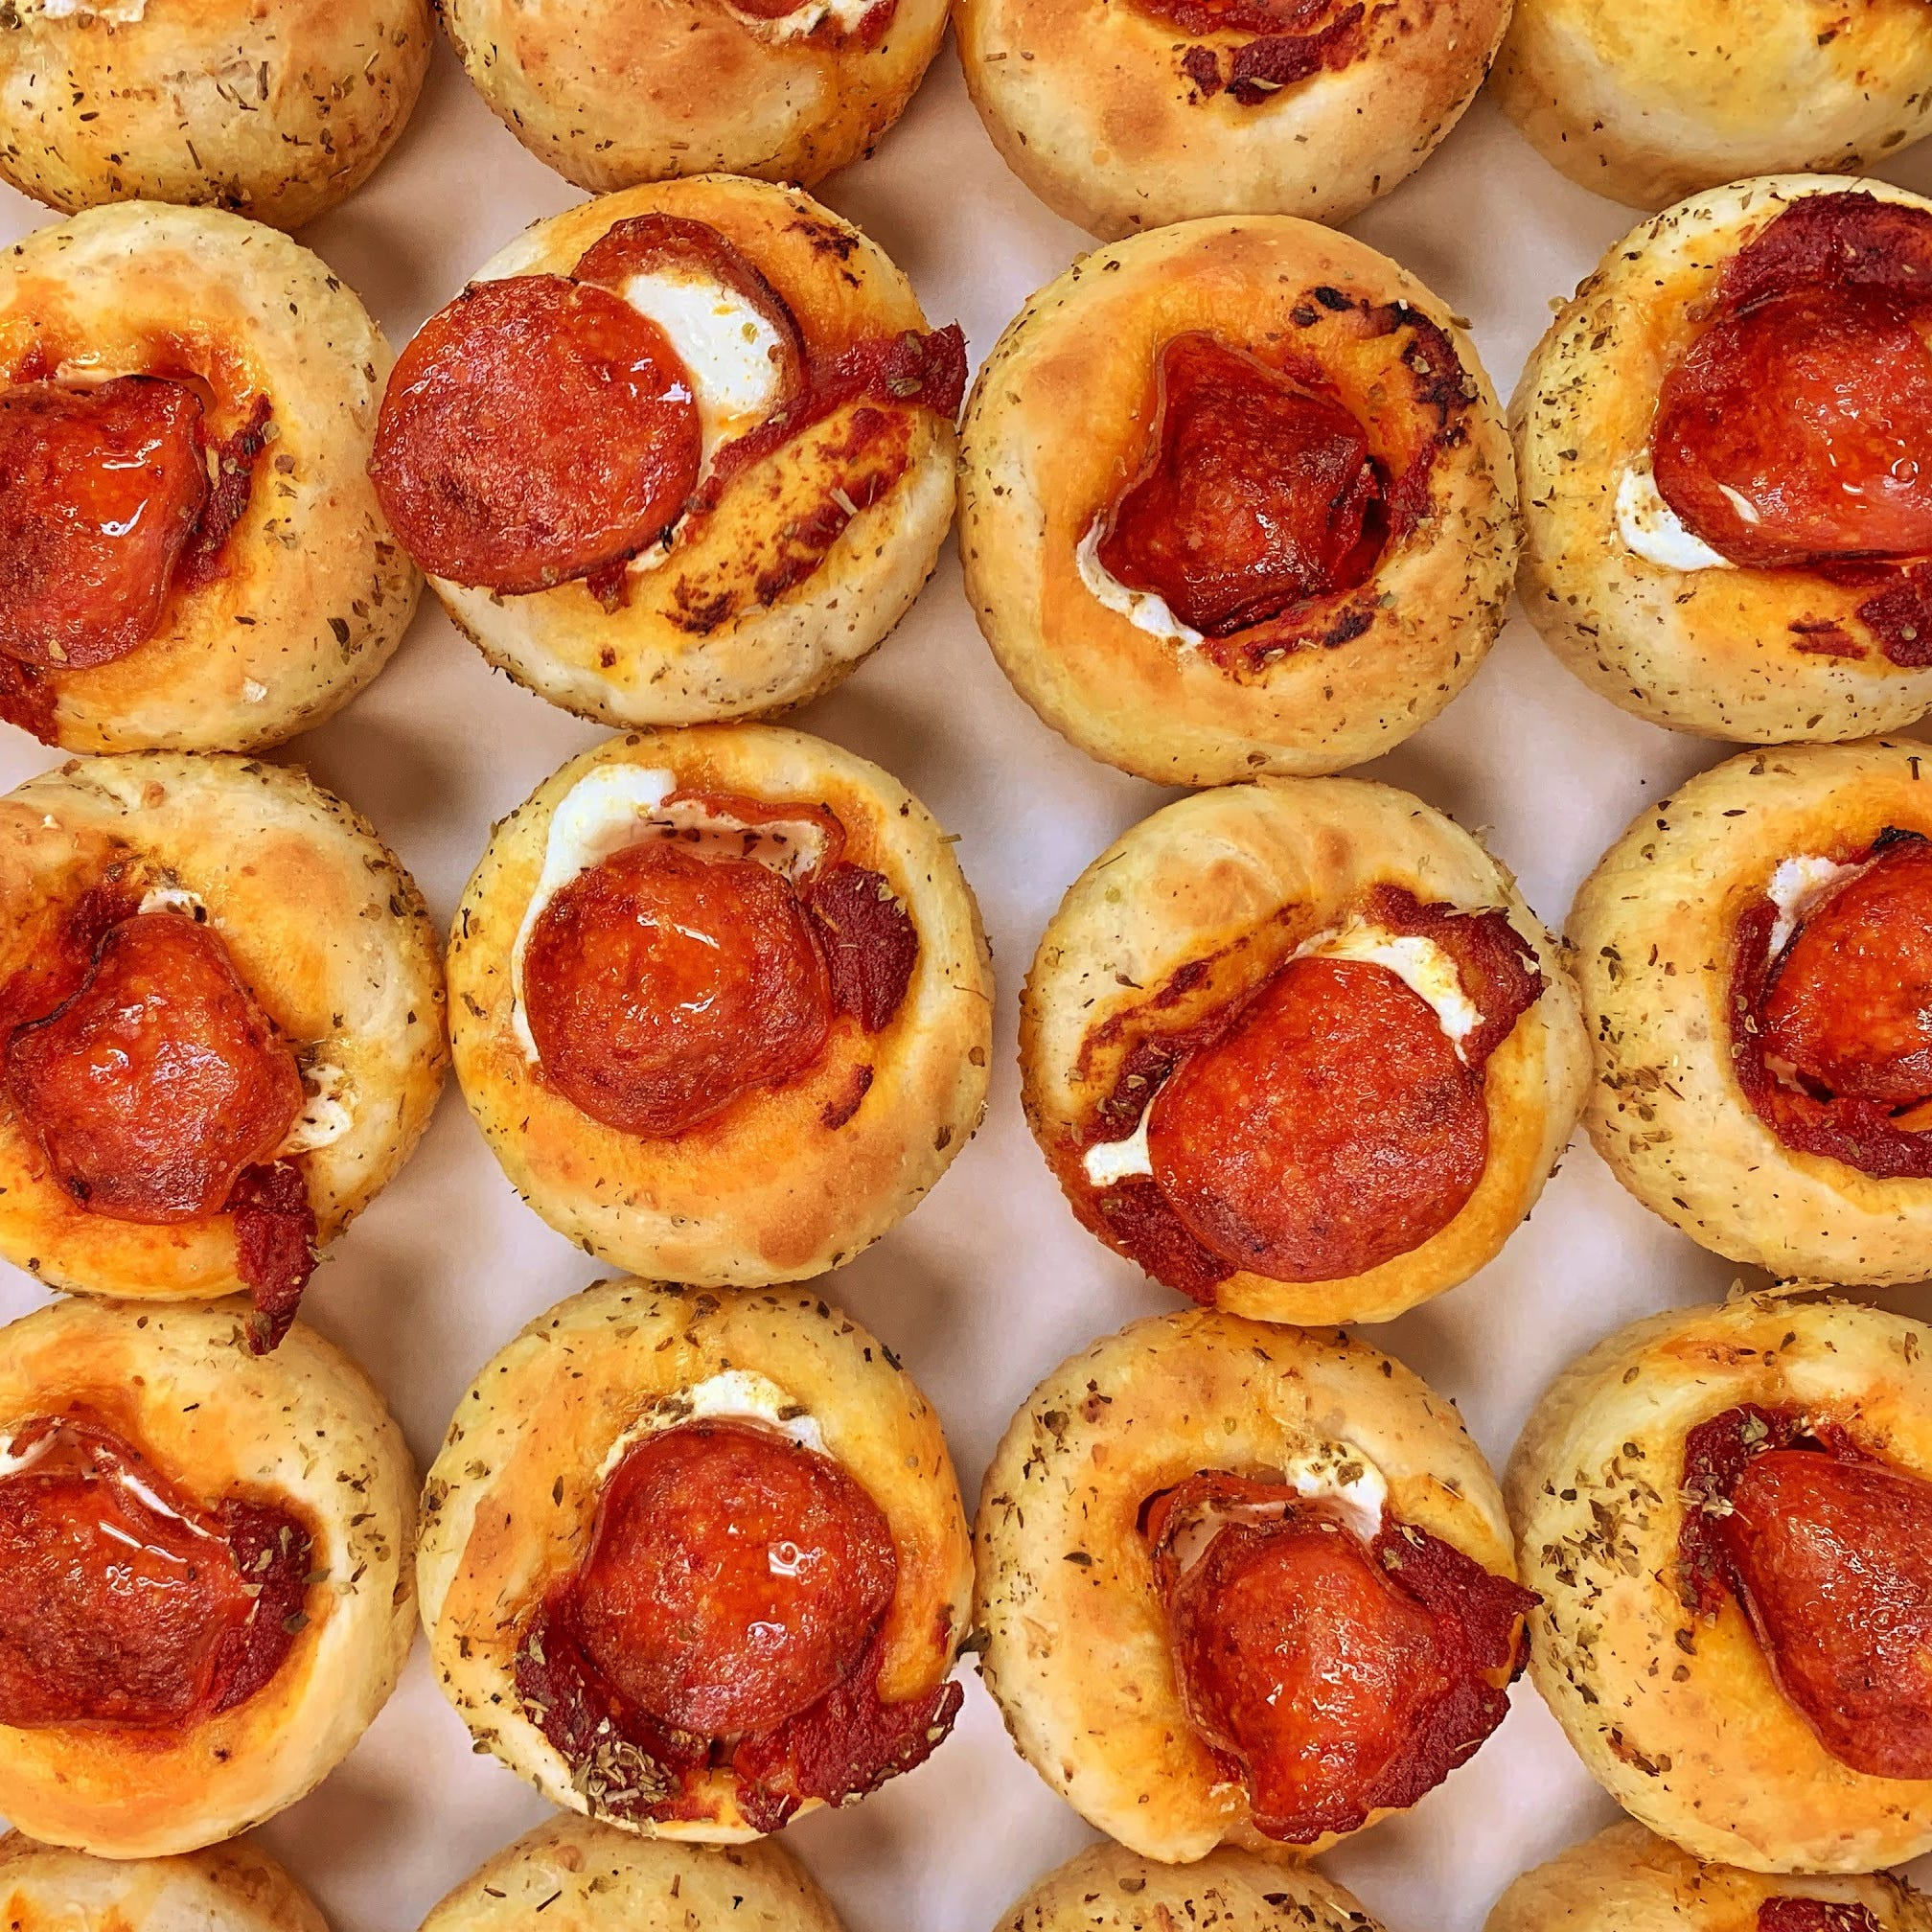 Pizza cupcakes, S'mores Nutella Bites and loaded fries? New food choices to try at Citi Field